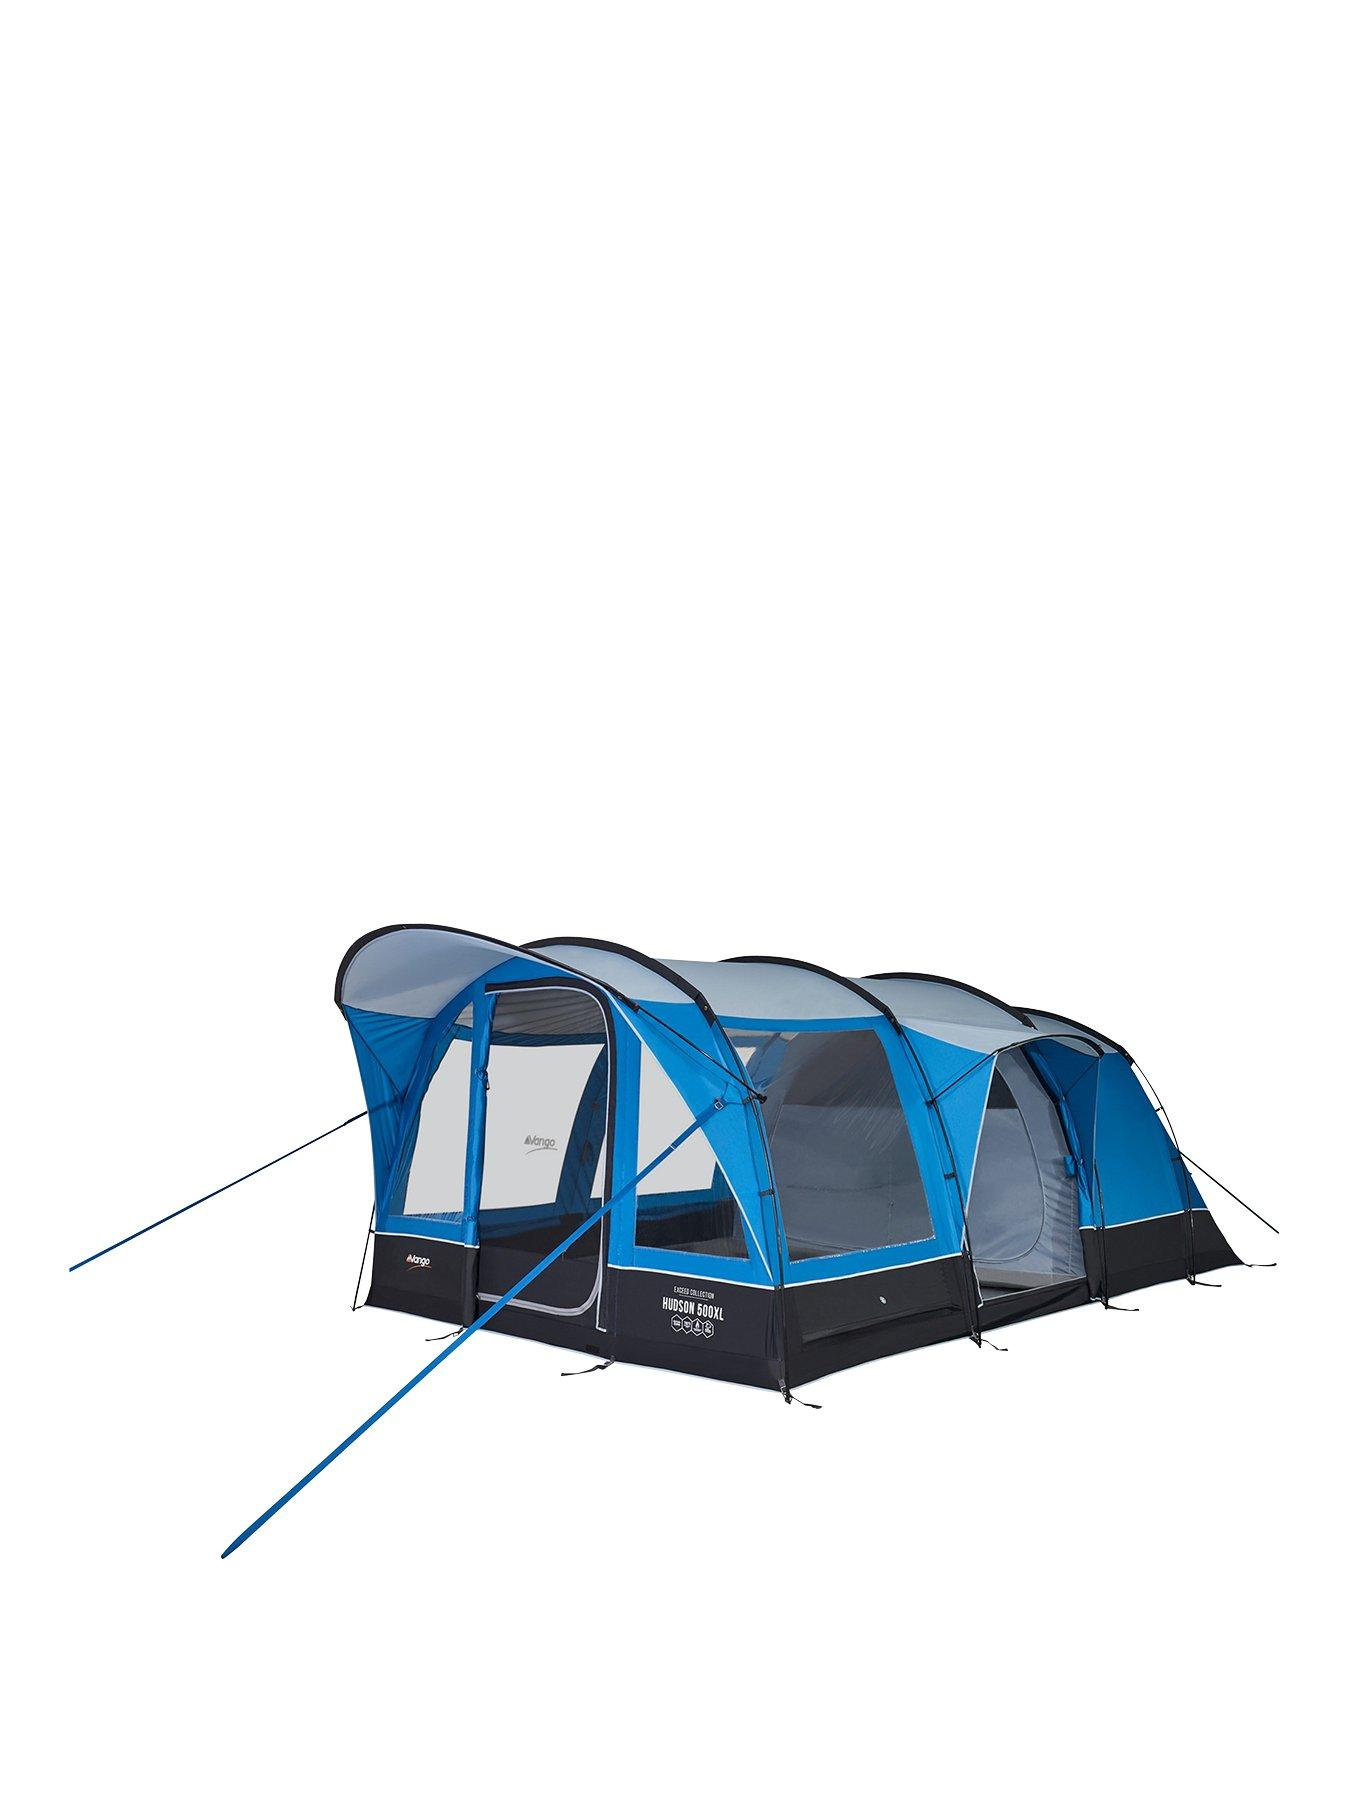 Tents | Tents For Camping | Family Tents Littlewoods